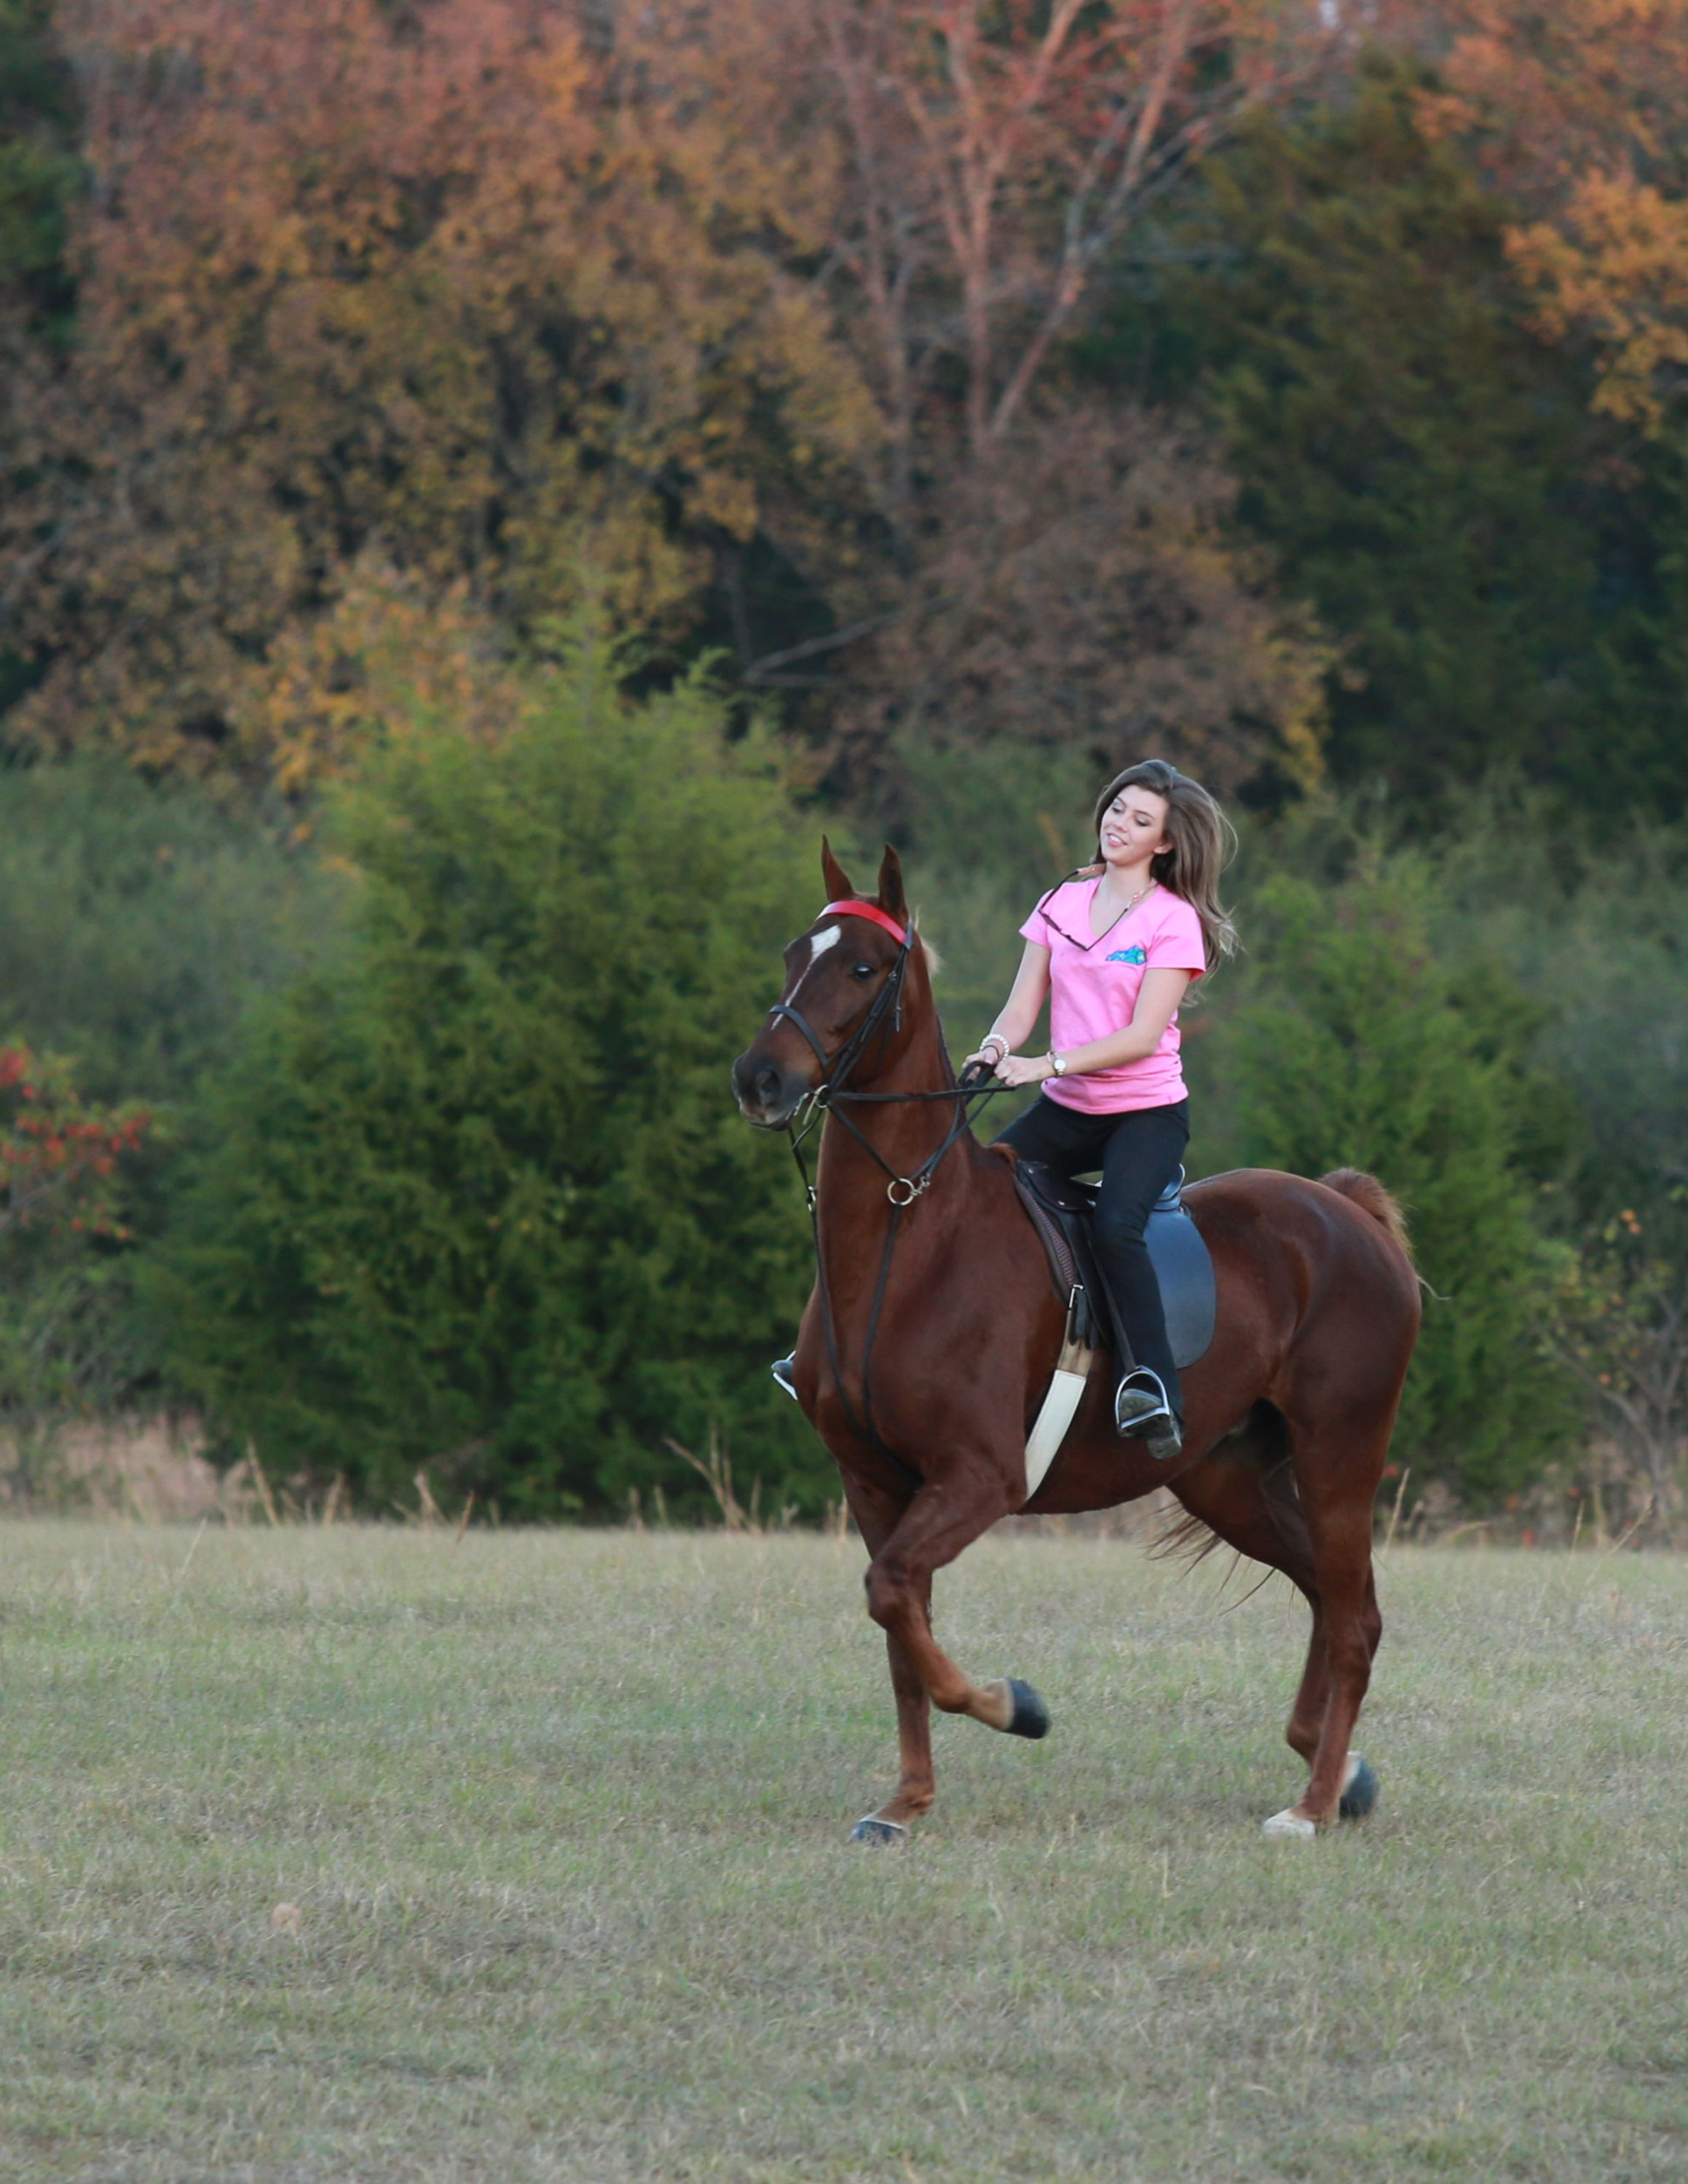 >Future equine vet Sierra Newsome takes her horse on a trail ride